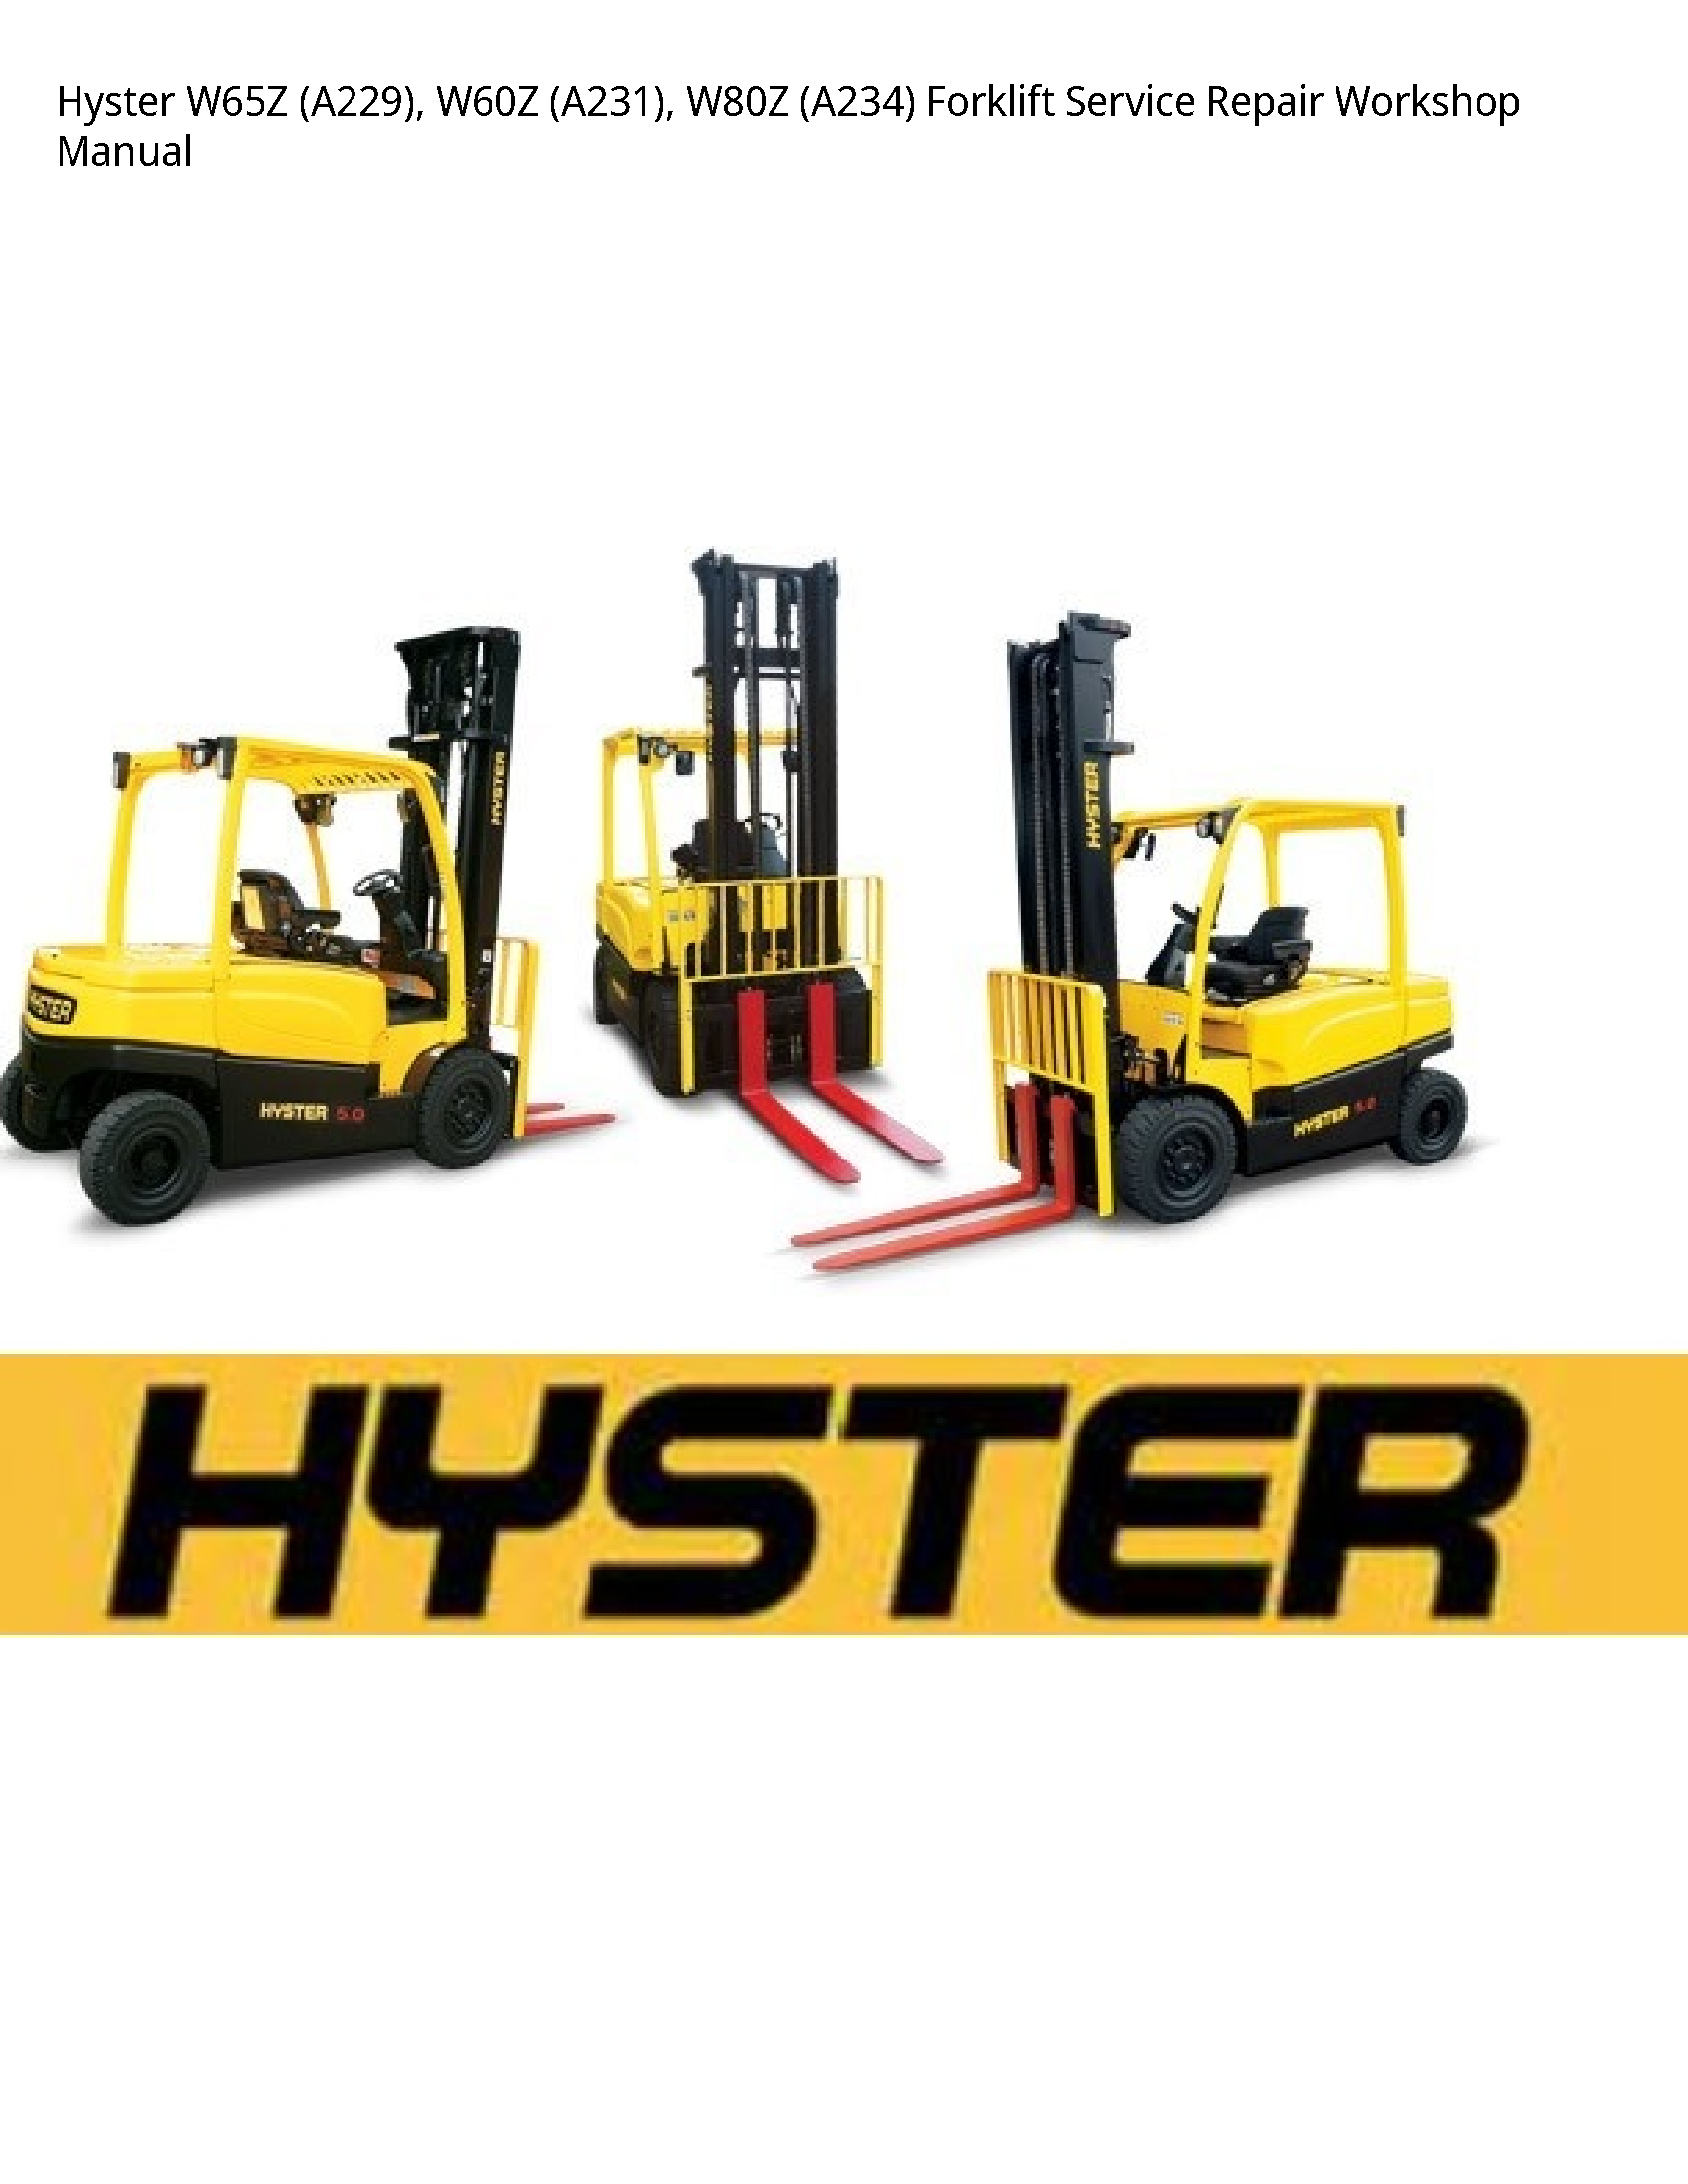 Hyster W65Z Forklift manual